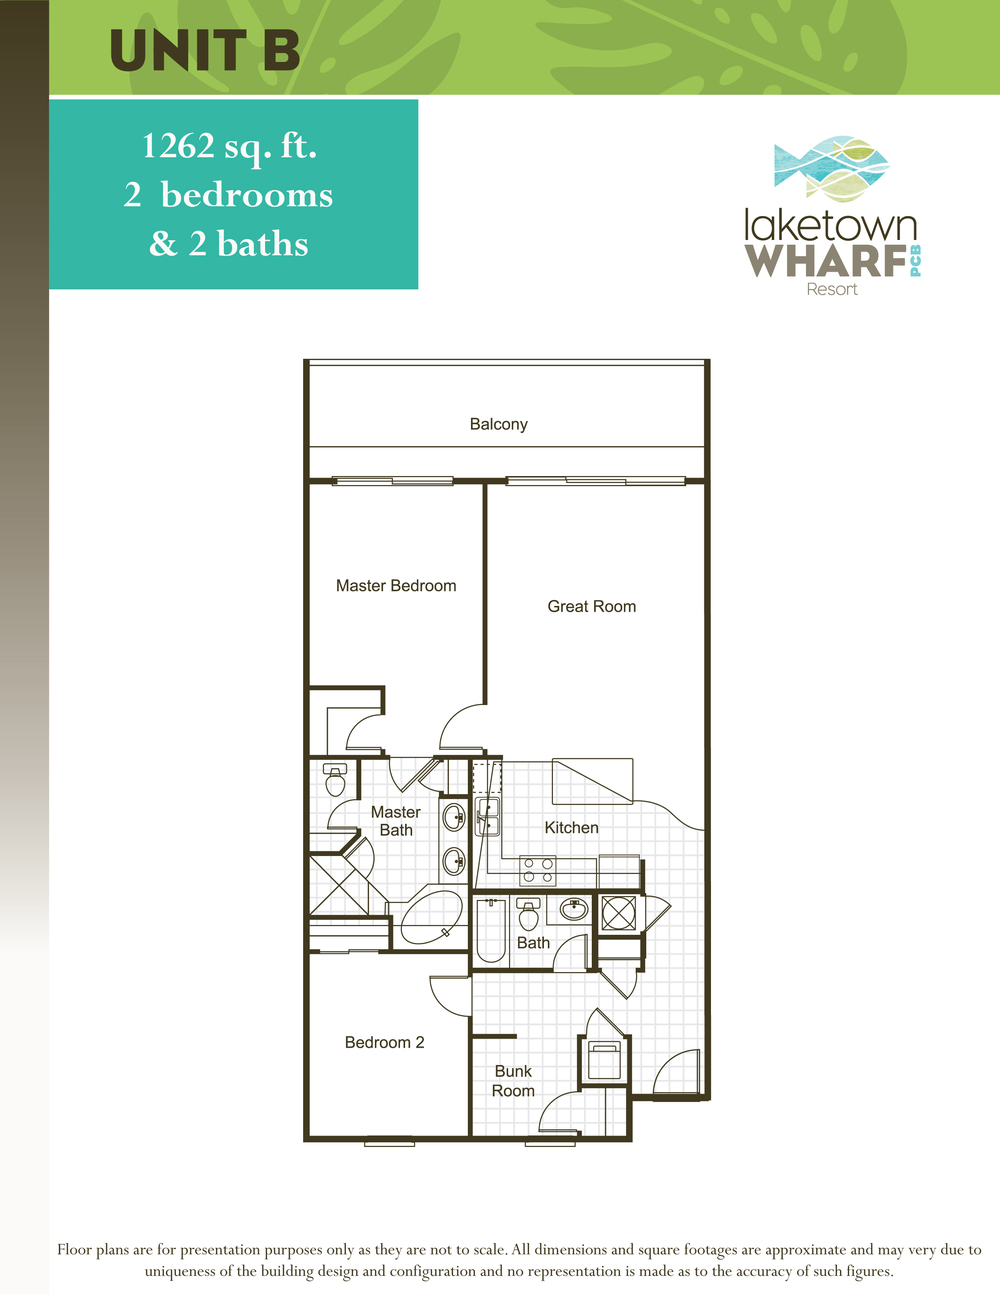 LTW+Unit+B+Edited+Floor+Plan-01.jpg